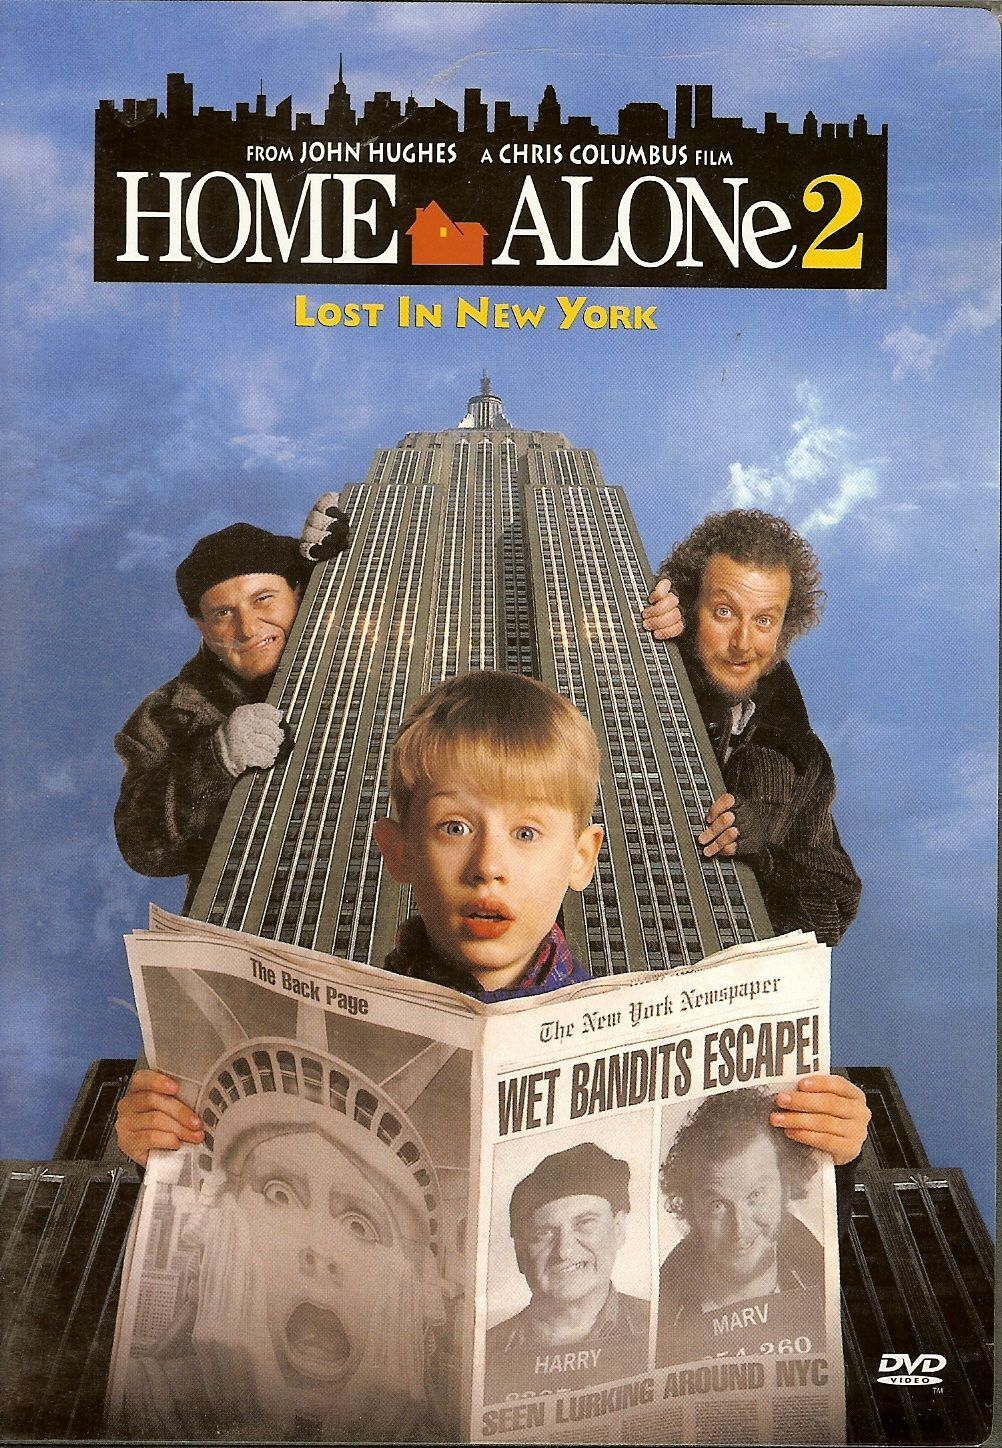 Home alone 2! I remember seeing this in the movie theater visiting ...